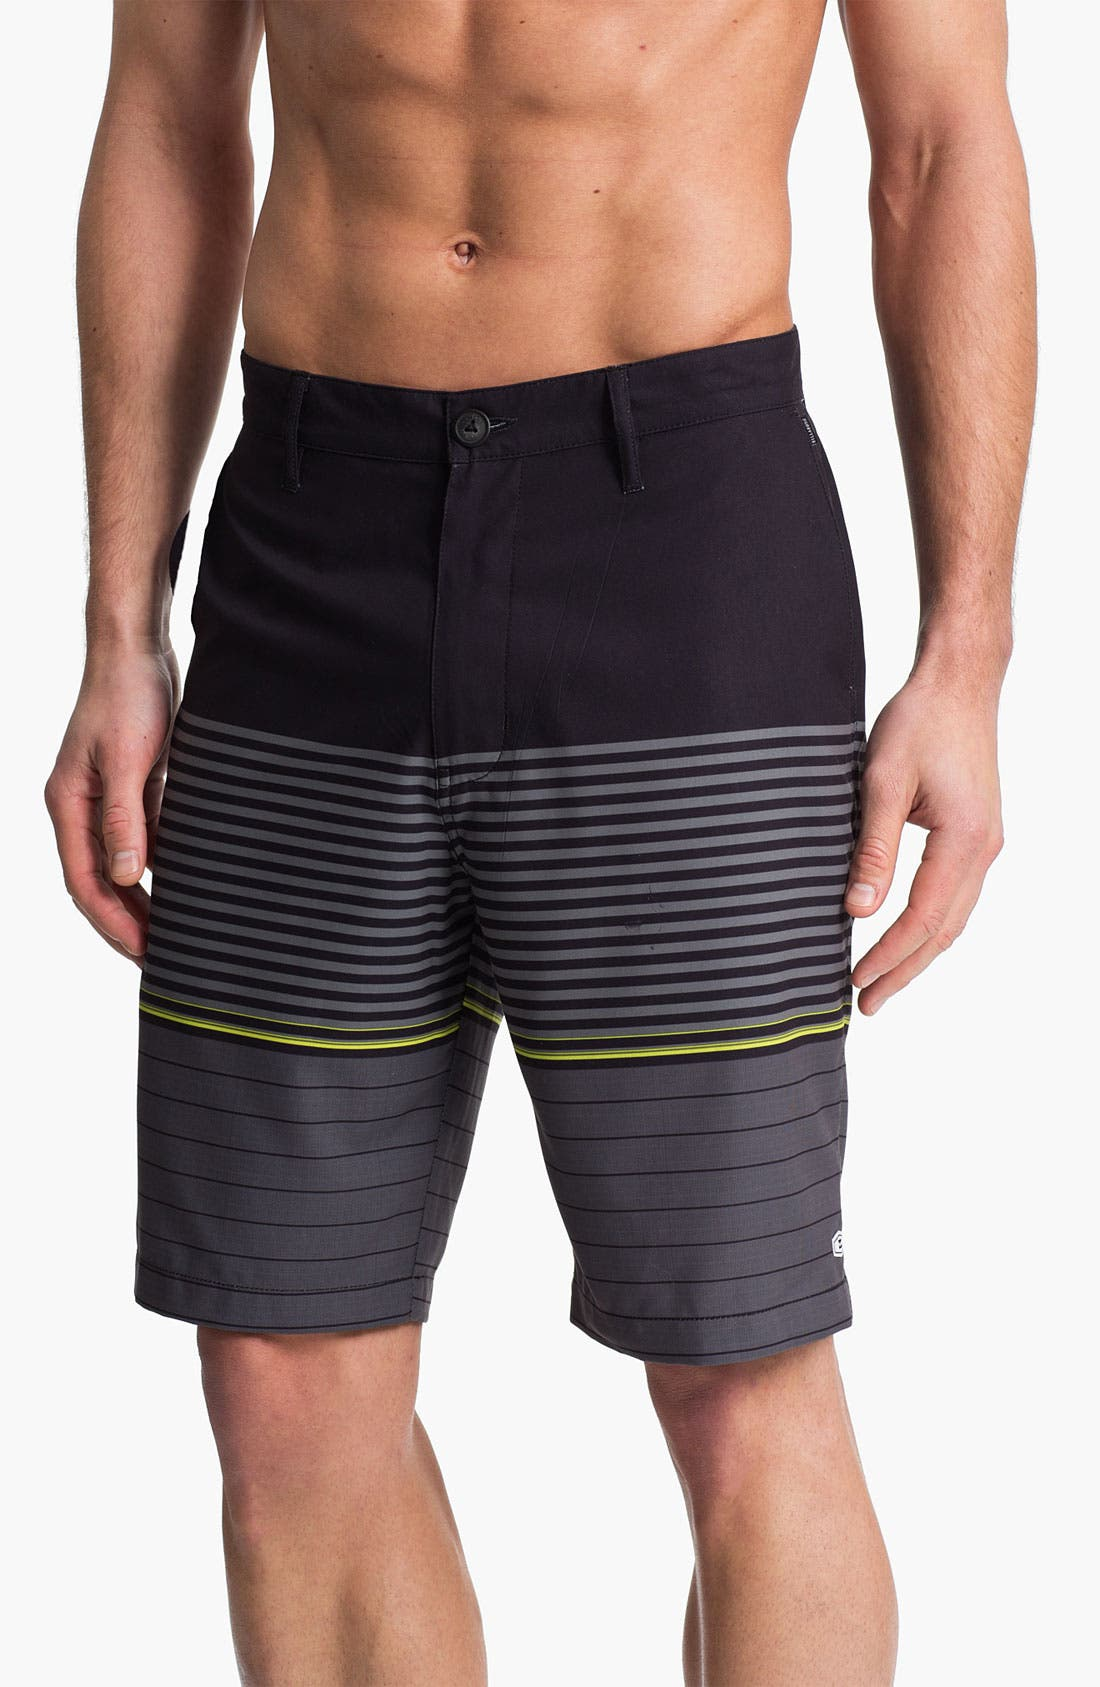 Alternate Image 1 Selected - Billabong 'Stacked' Hybrid Shorts (Online Exclusive)